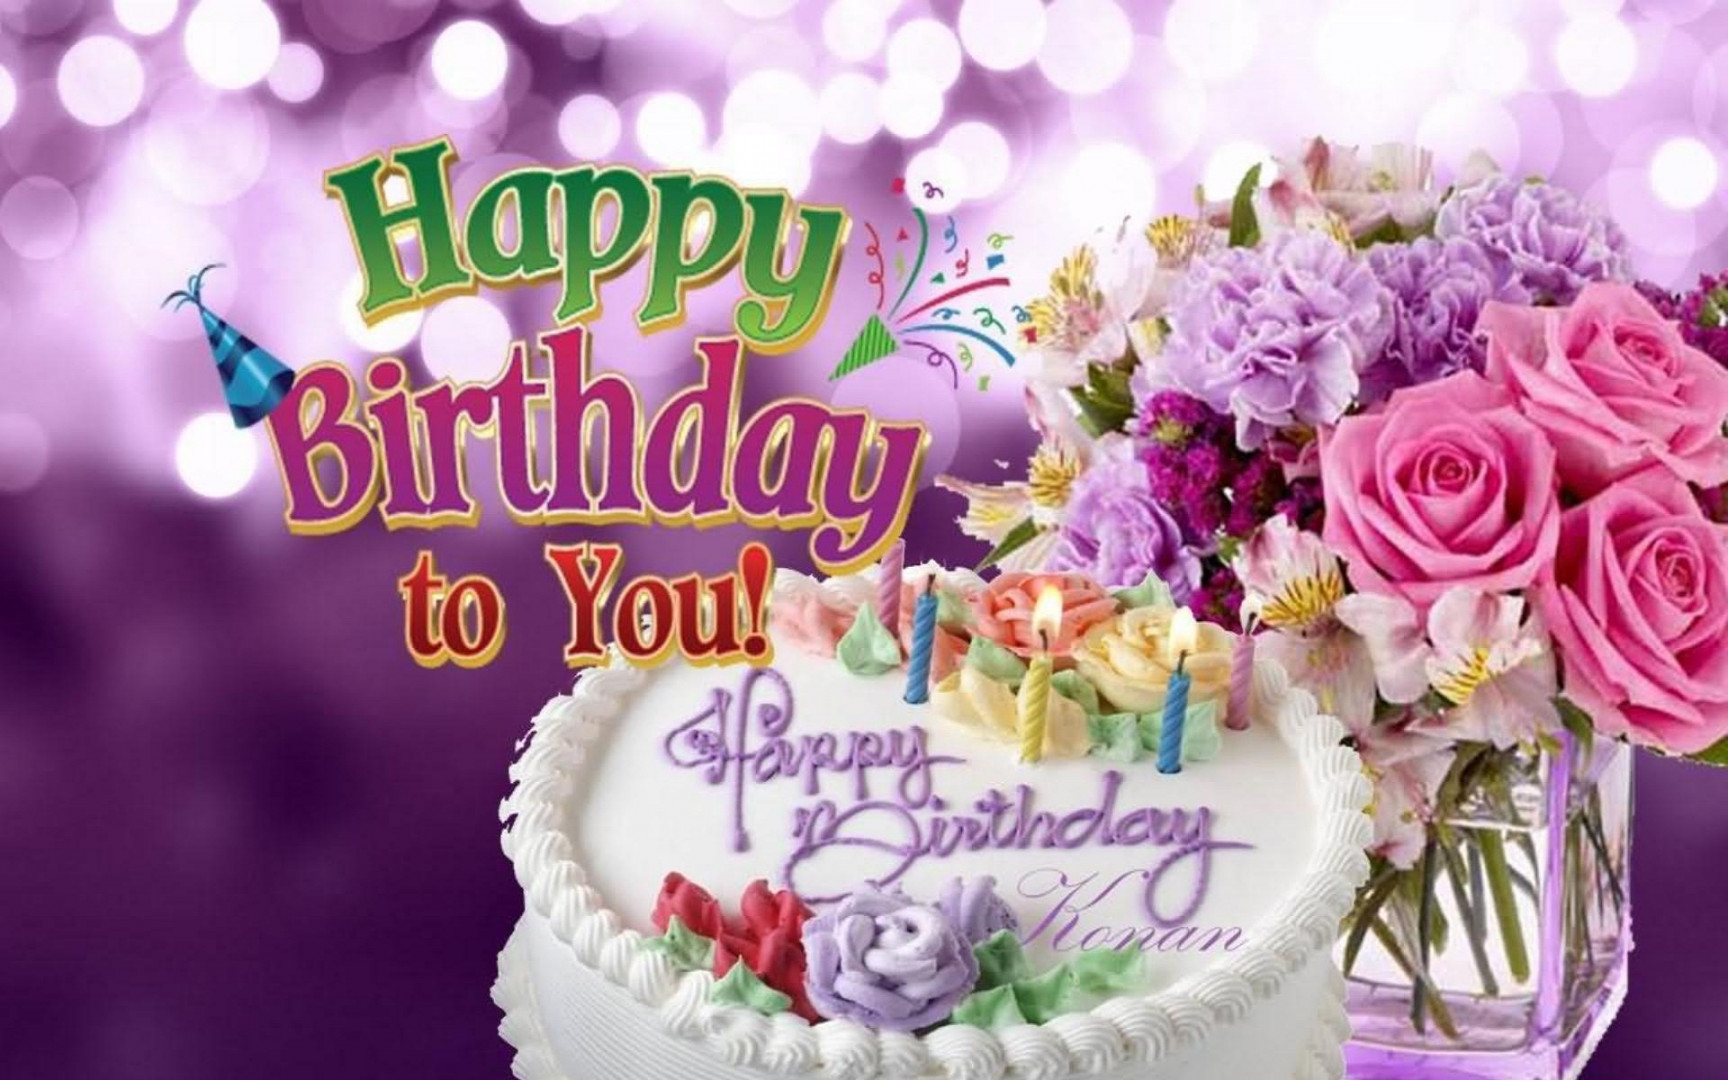 happy birthday wishes download images ; beautiful-happy-birthday-wishes-wallpaper-of-happy-birthday-flower-images-free-download